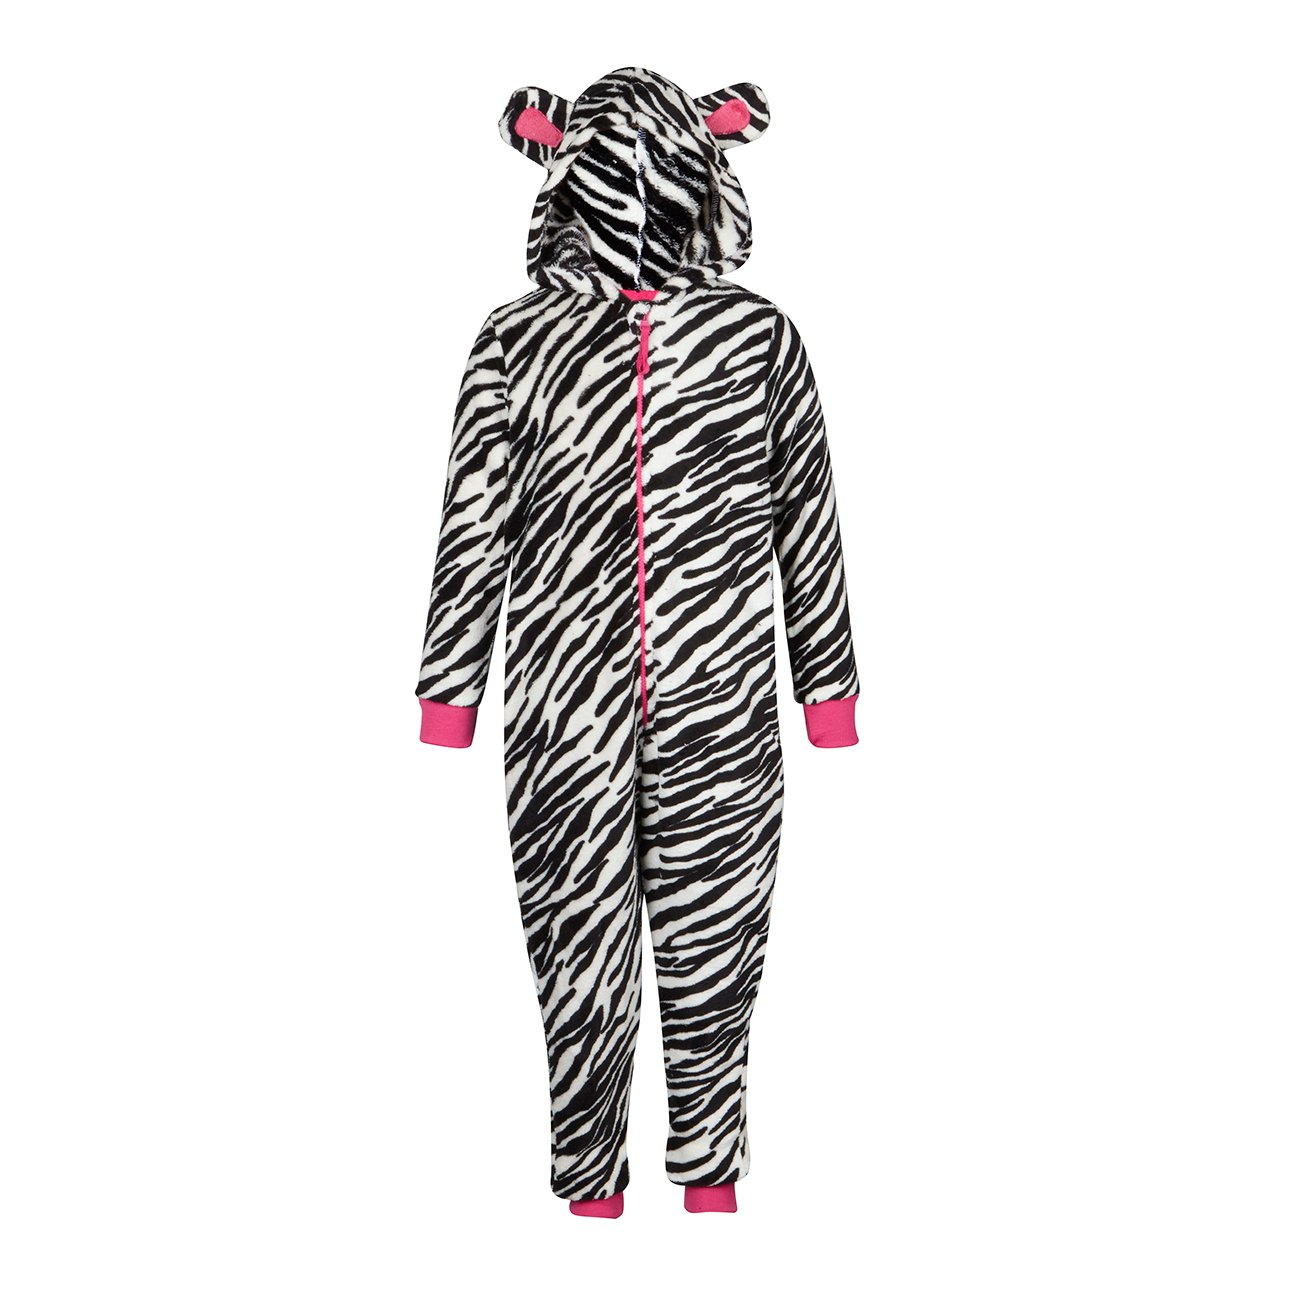 New Children/'s Zebra Leopard Print Hooded All In One Onezee Jumpsuit PJ Pajamas